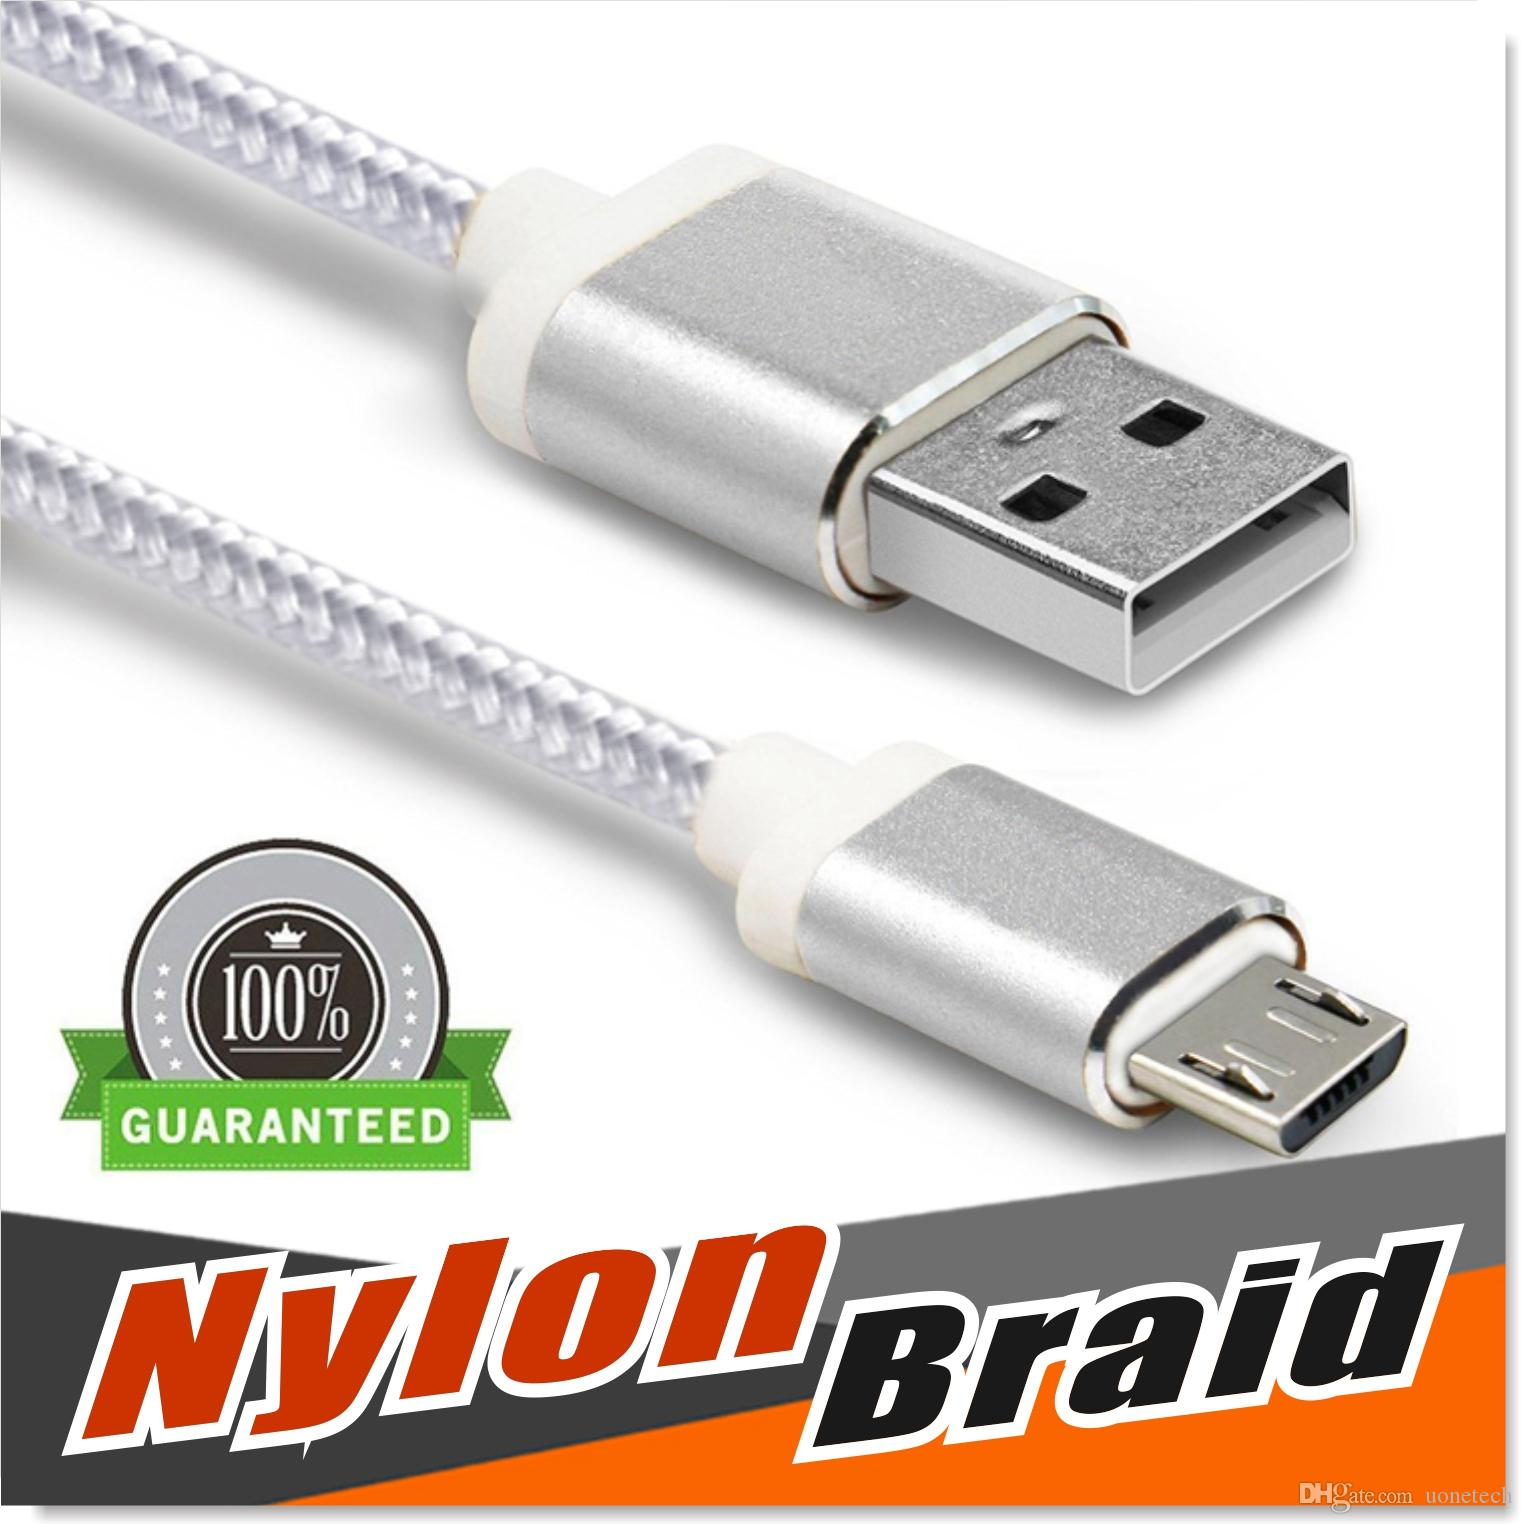 Wiring For Phone Wire Connector Types Schematics Diagrams Rj14 Data Jack S8 Cable Micro Usb Type C 3 1 Nylon Braided 4ft 2 0 Rh Dhgate Com Oldwe 225a Cord